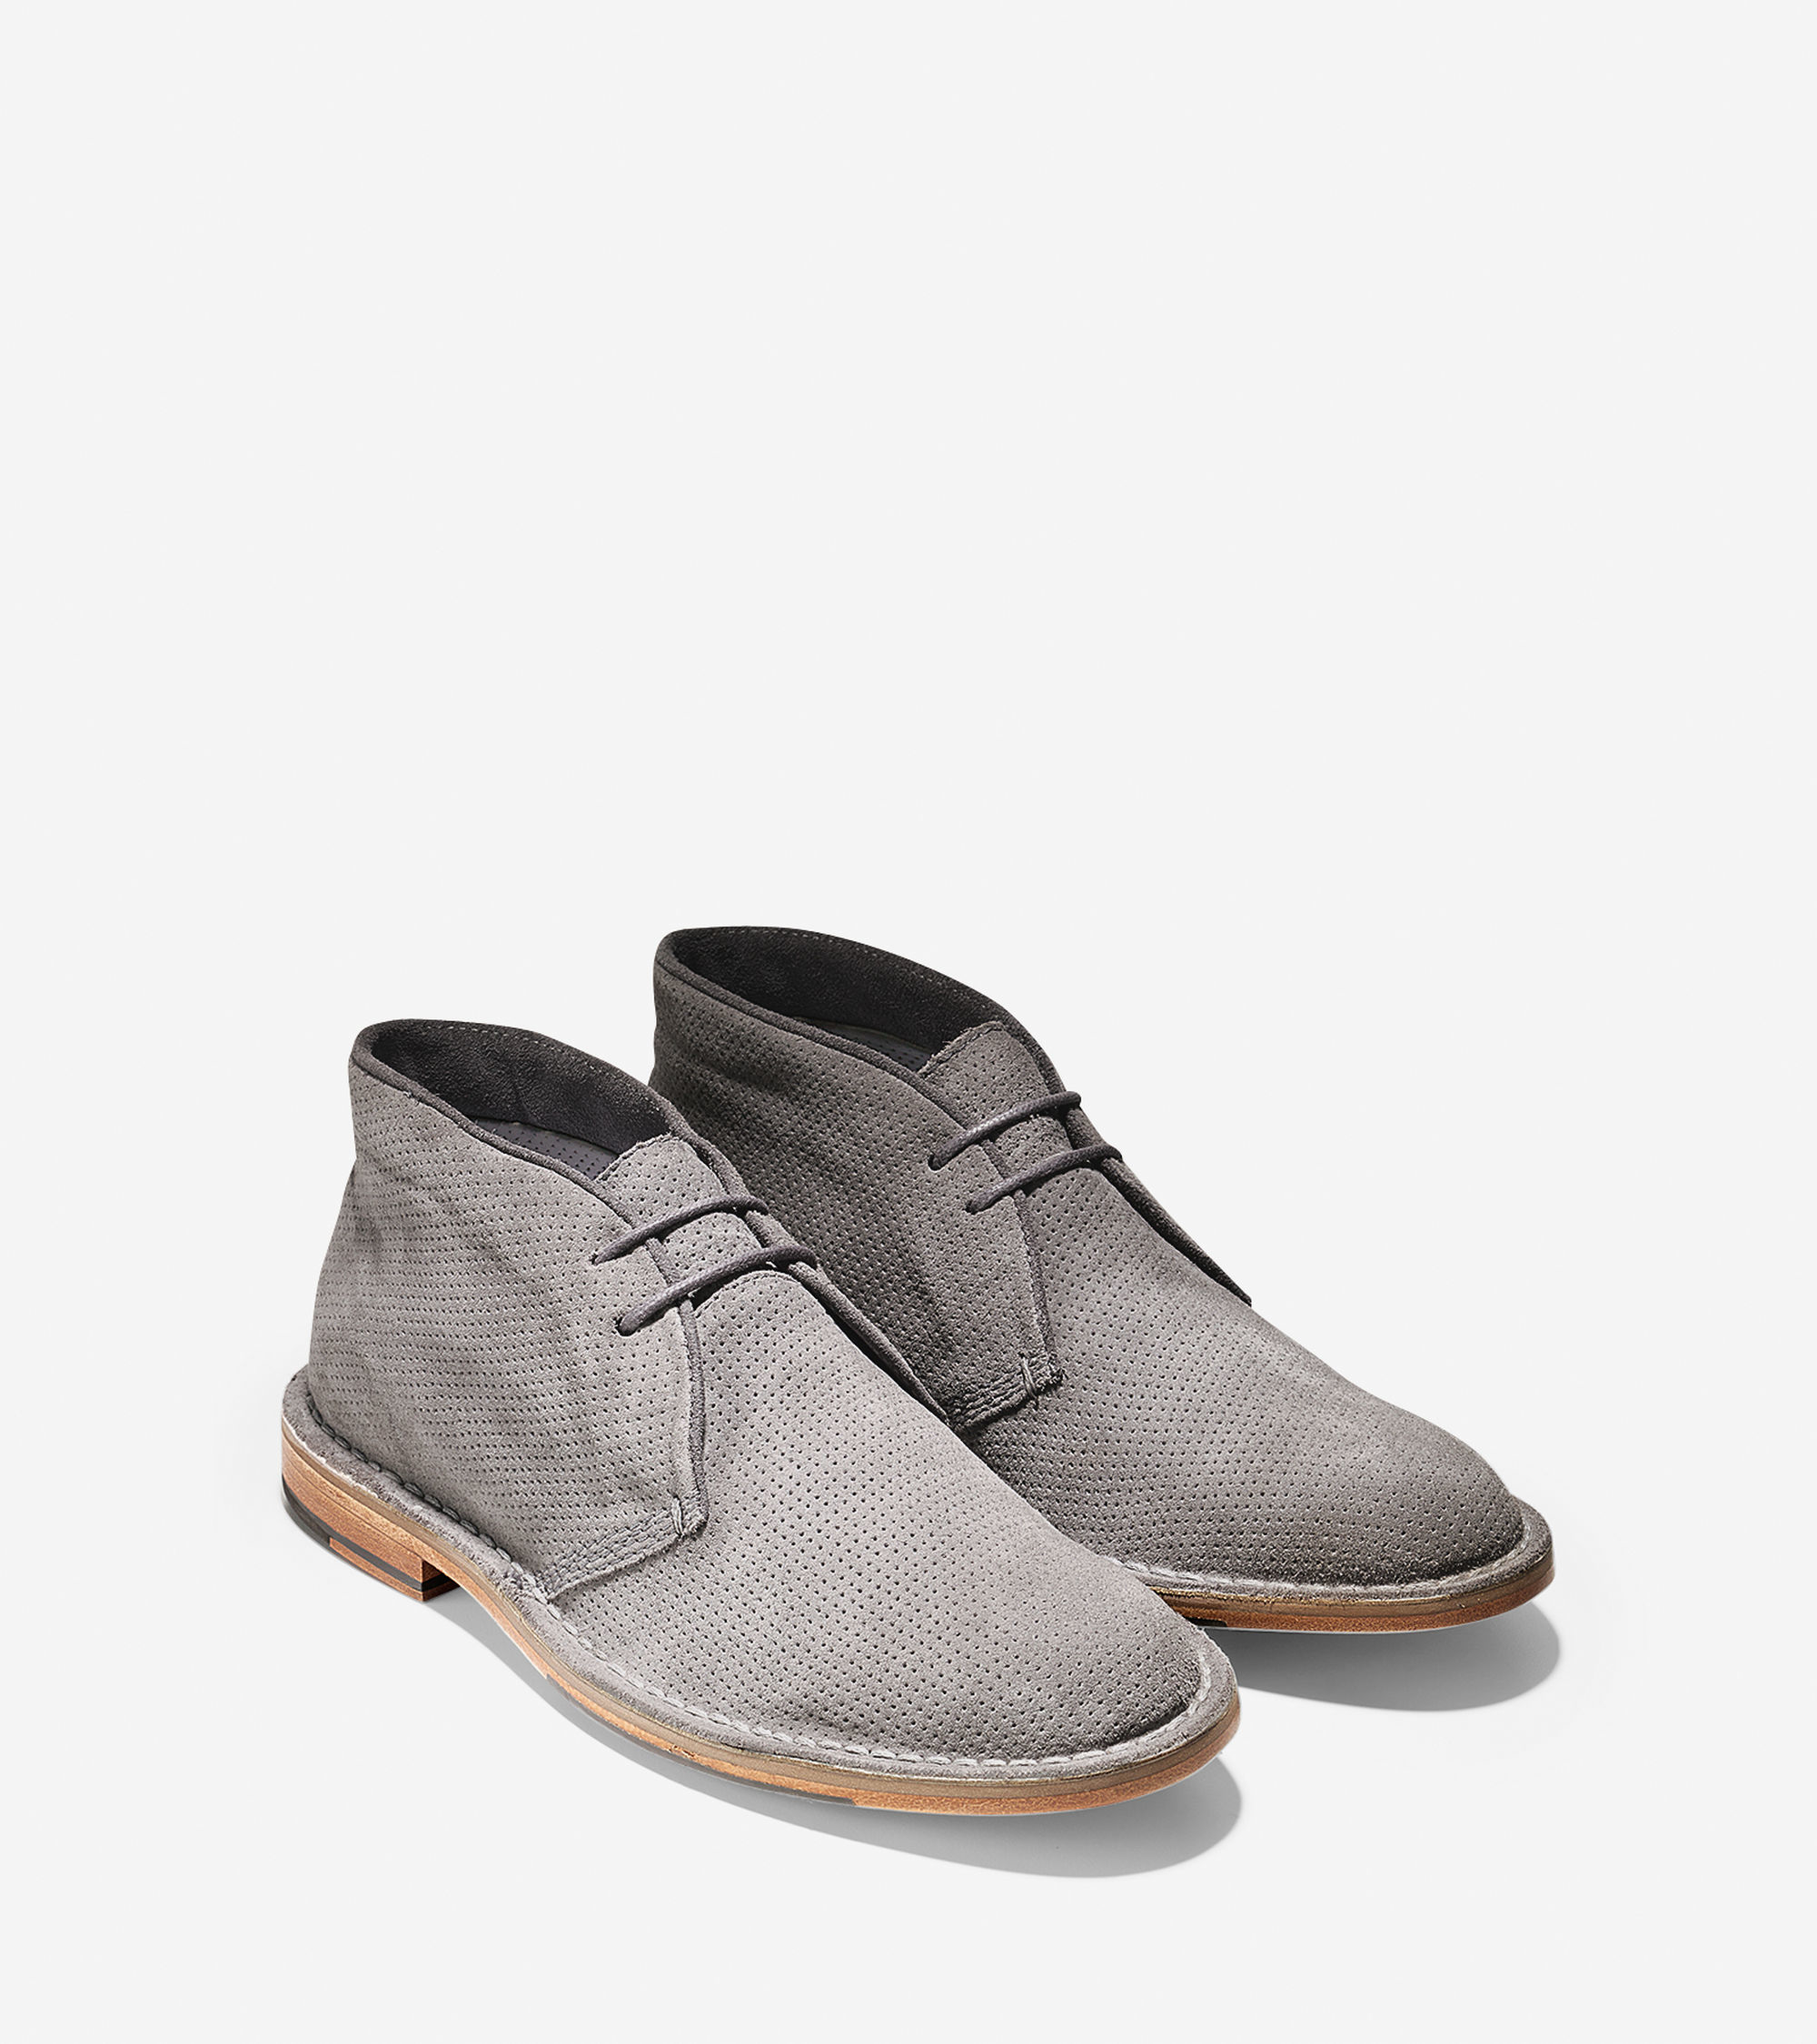 cole haan grover perforated suede chukka boots in gray for